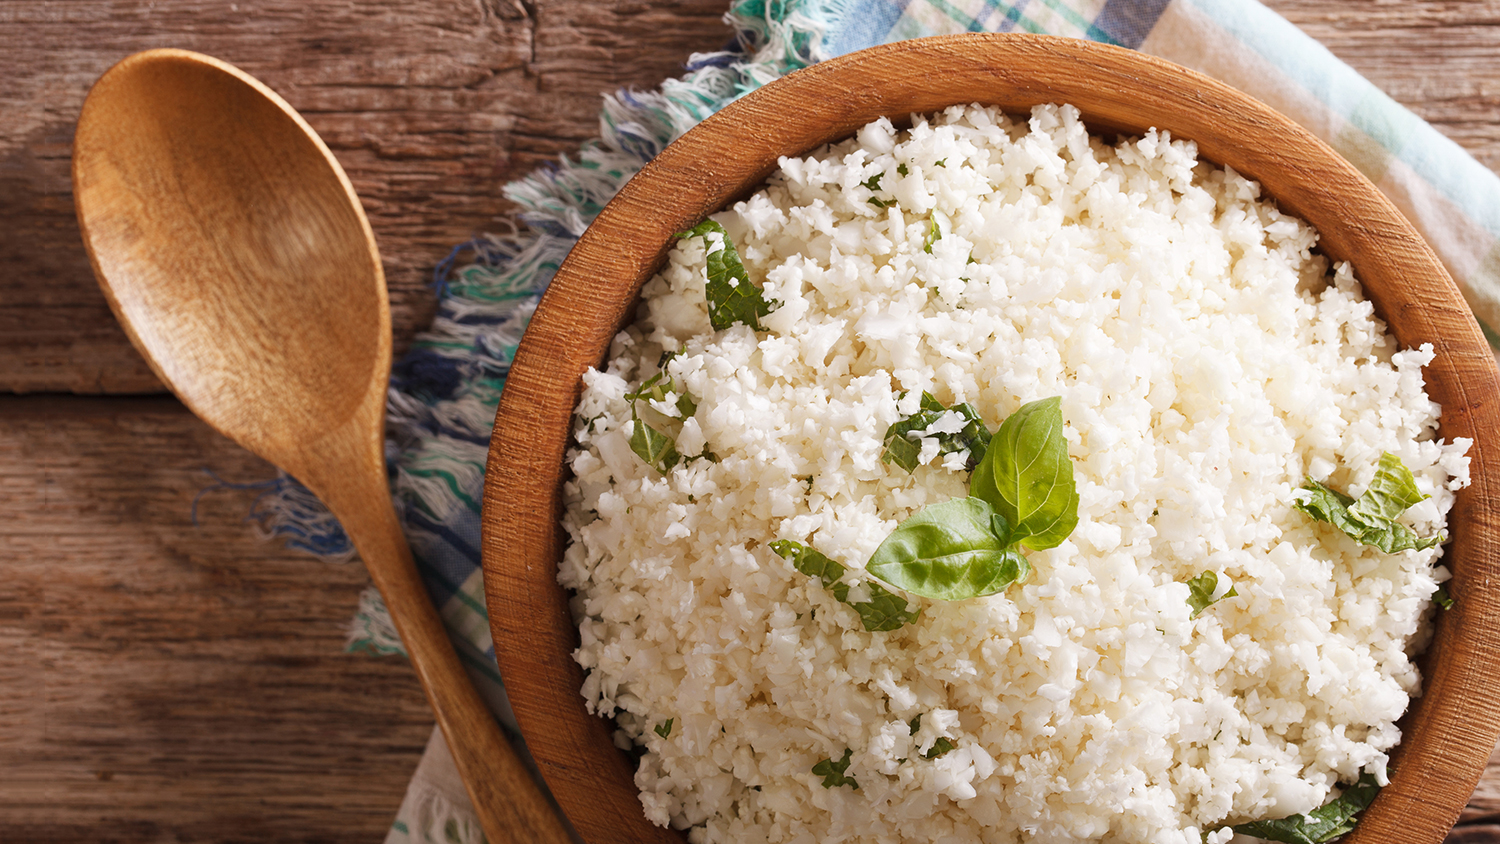 Trader Joe's Is Rationing Its Cauliflower Rice Due to High Demand